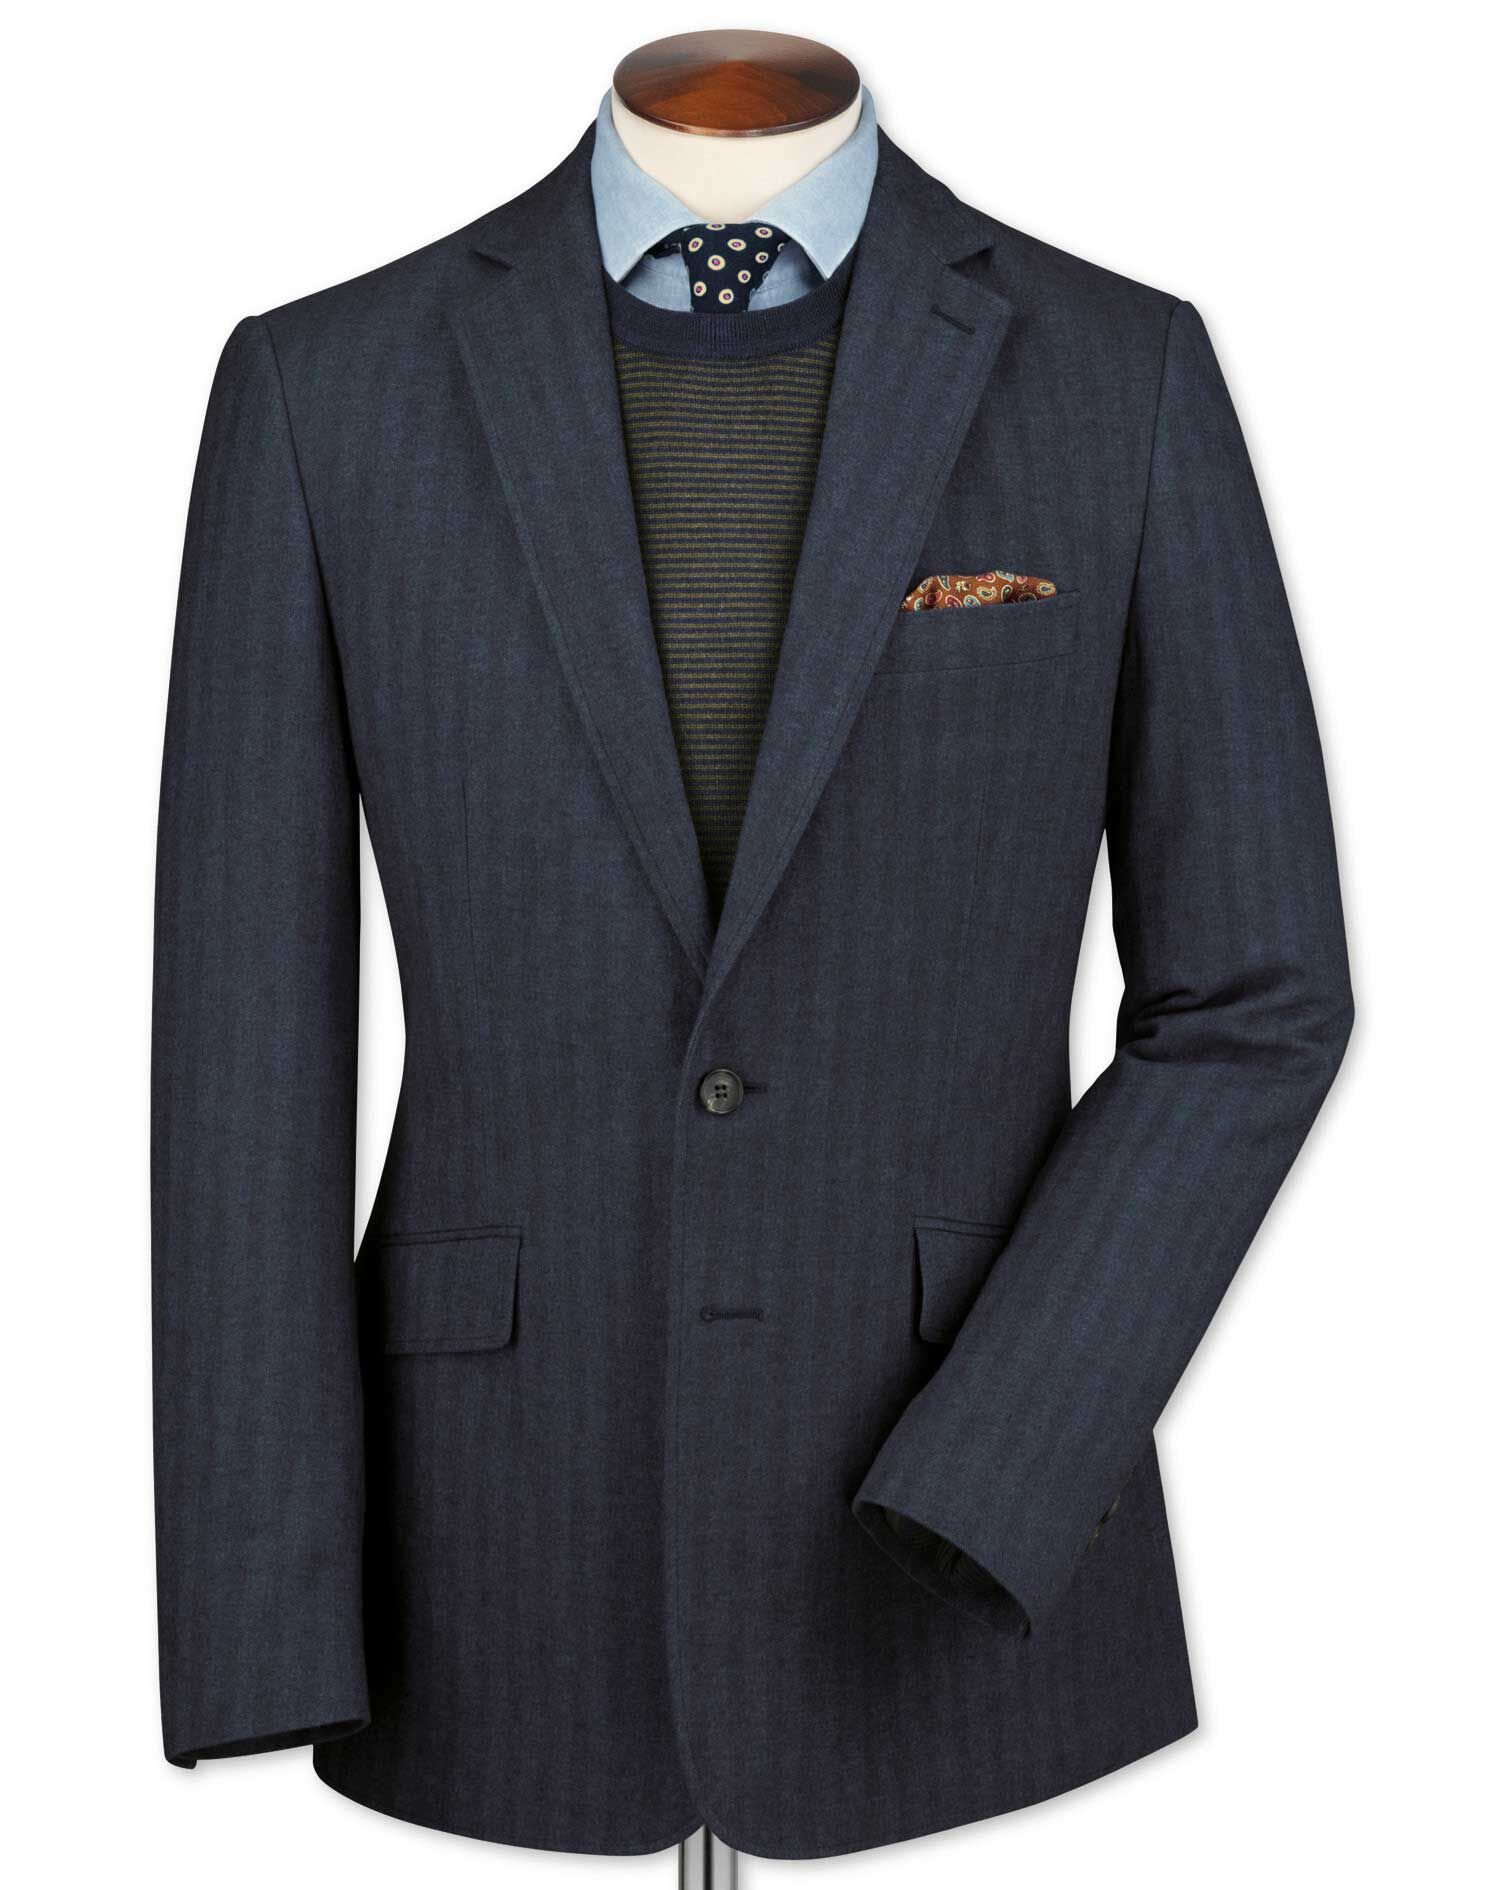 Slim Fit Airforce Blue Herringbone Cotton Flannel Cotton Jacket Size 44 Long by Charles Tyrwhitt